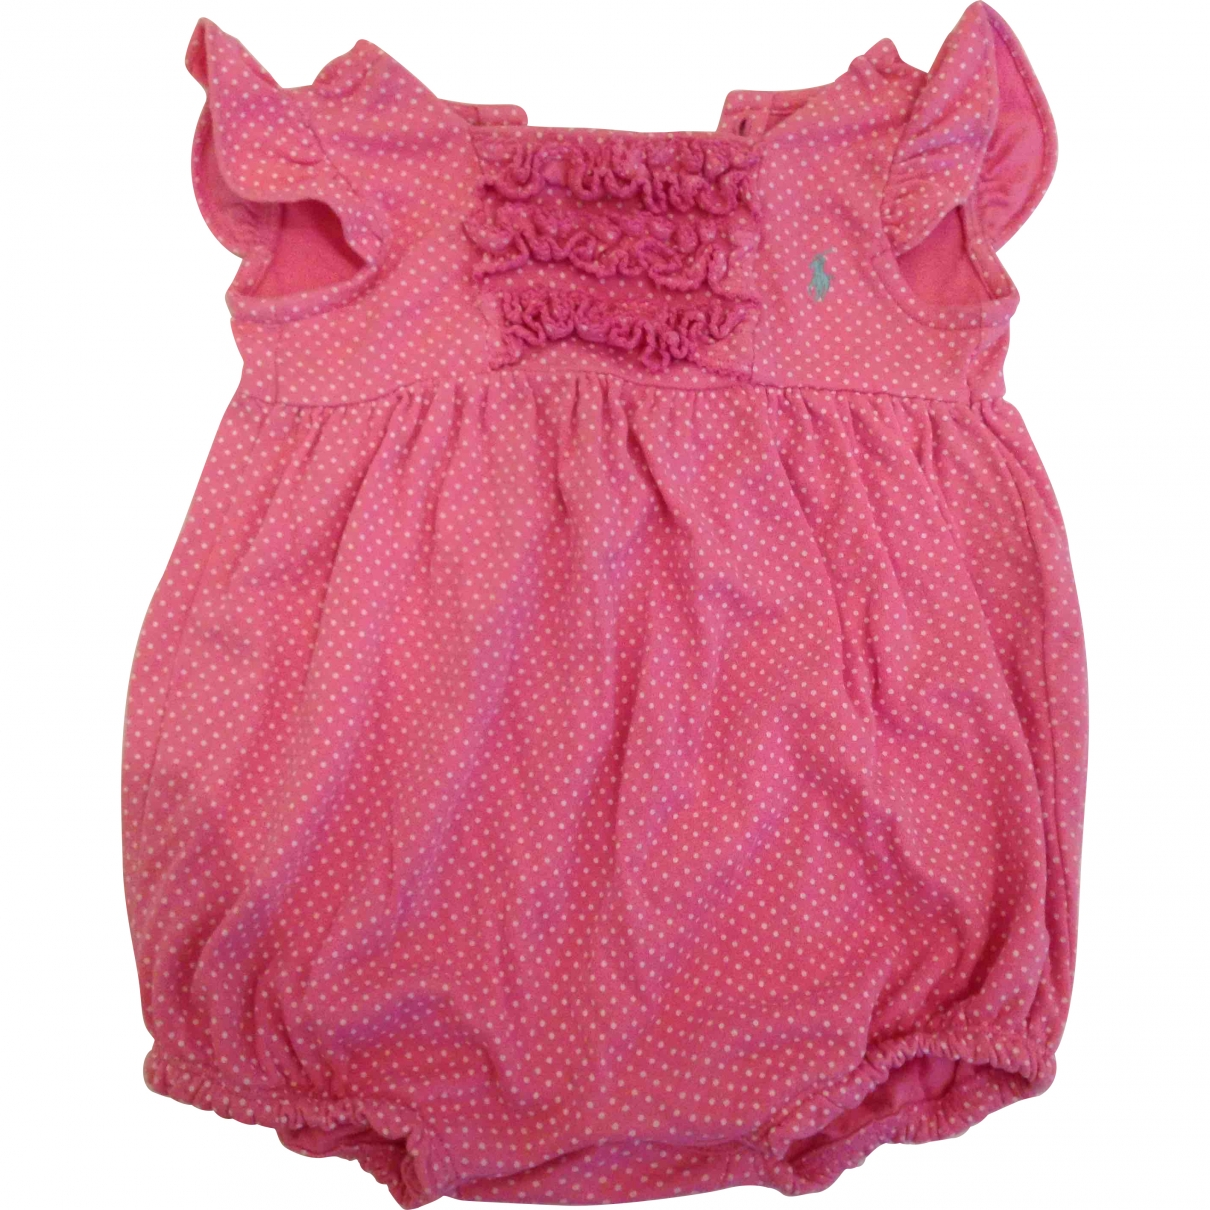 Ralph Lauren \N Pink Cotton Outfits for Kids 6 months - until 26.5 inches UK